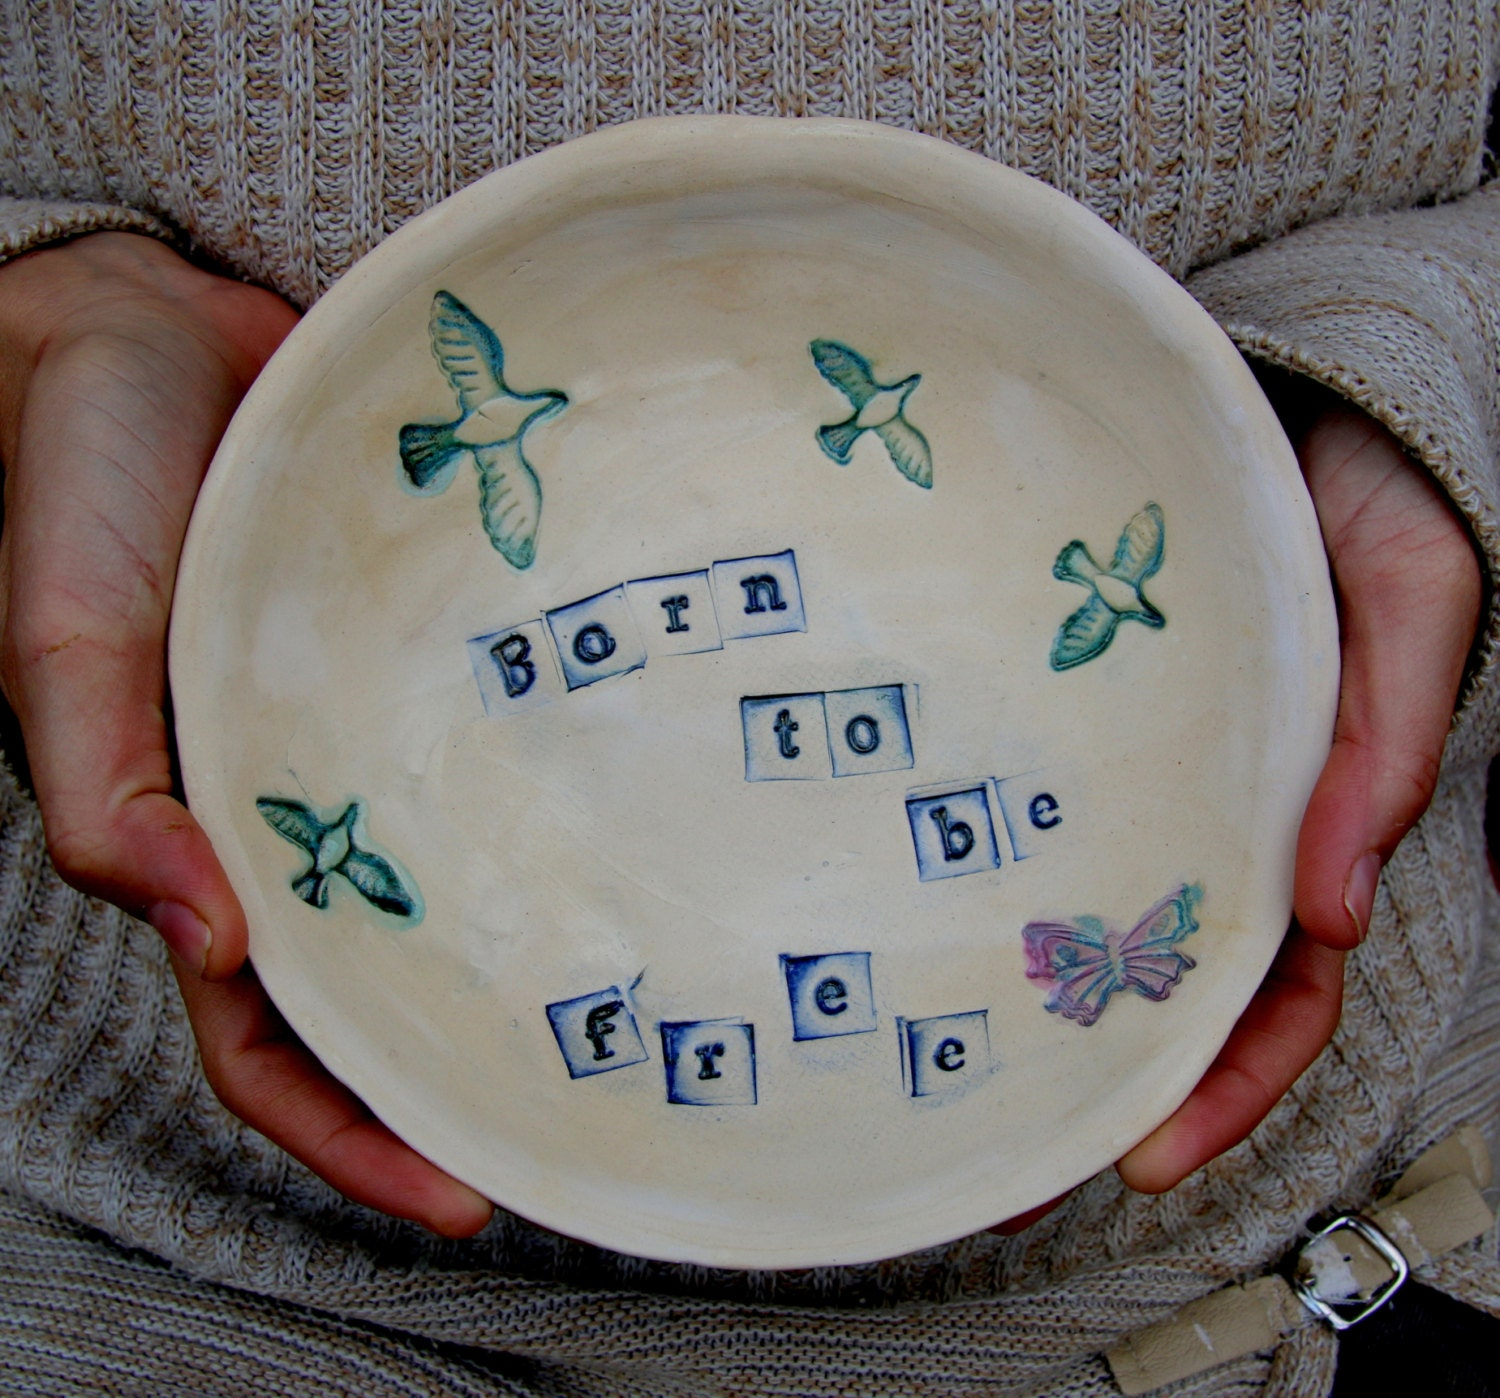 Just Had A Baby Gift Ideas : Hand made ceramic plate baby shower gift birthday